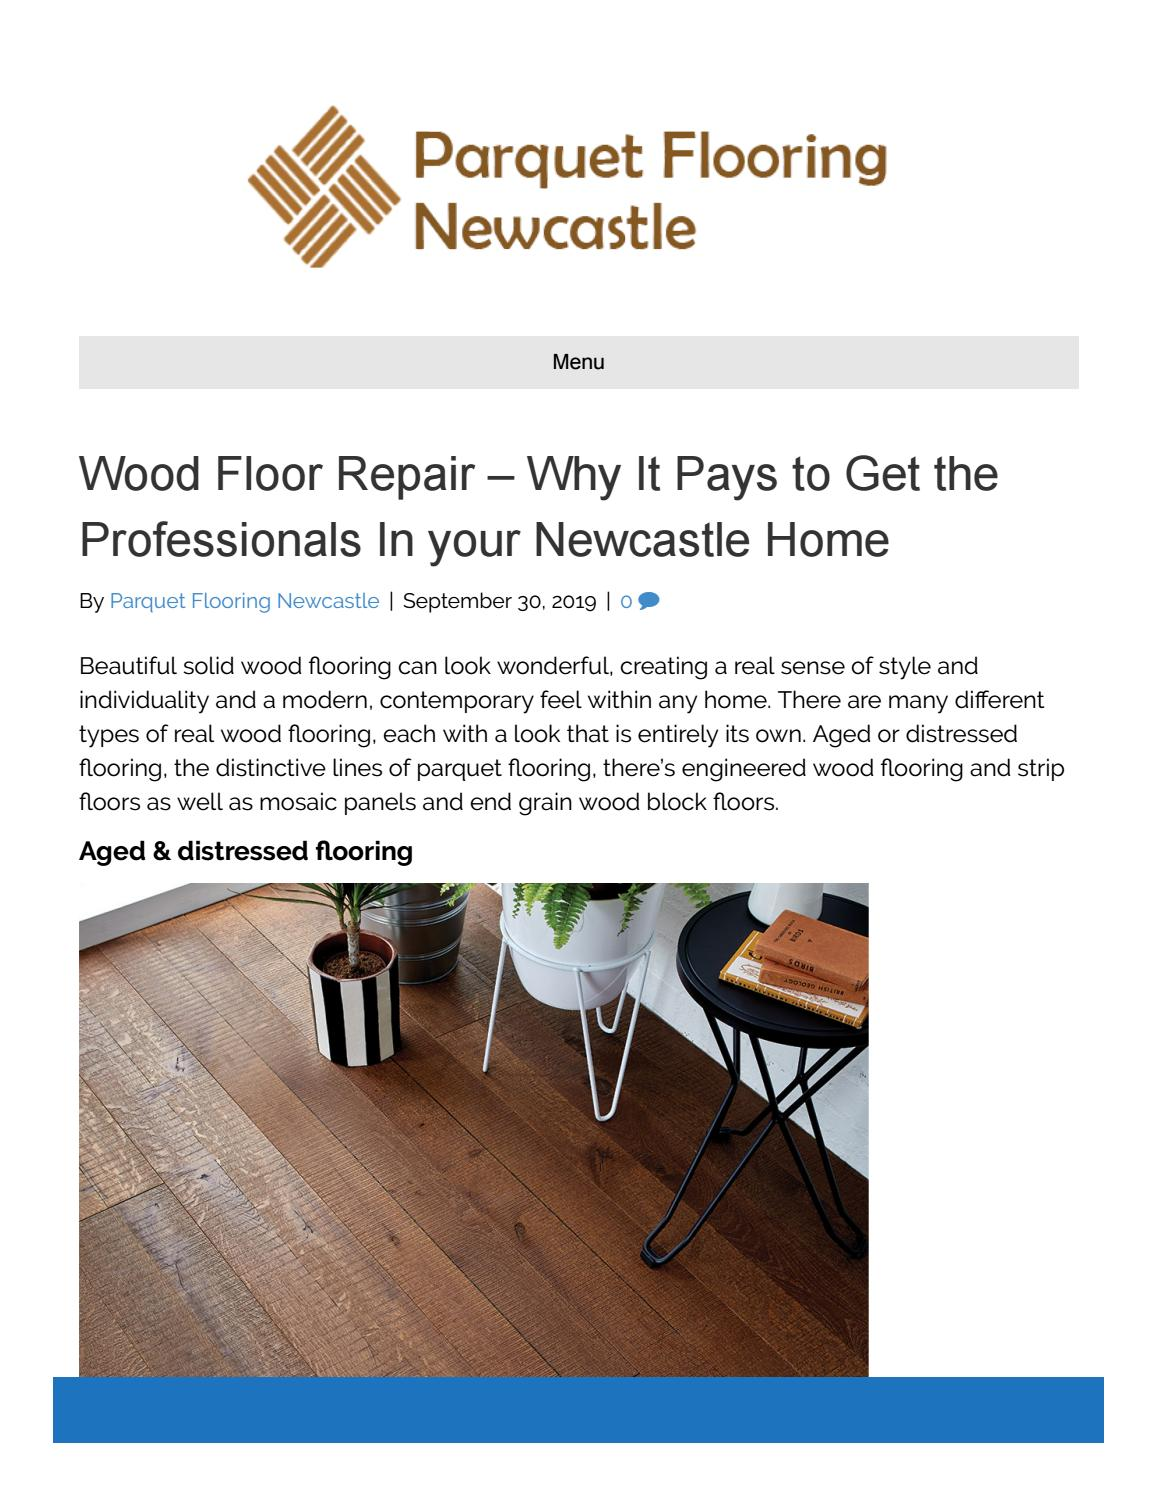 Wenge Oak Solid Wood Flooring wood floor repair – why it pays to get the professionals in